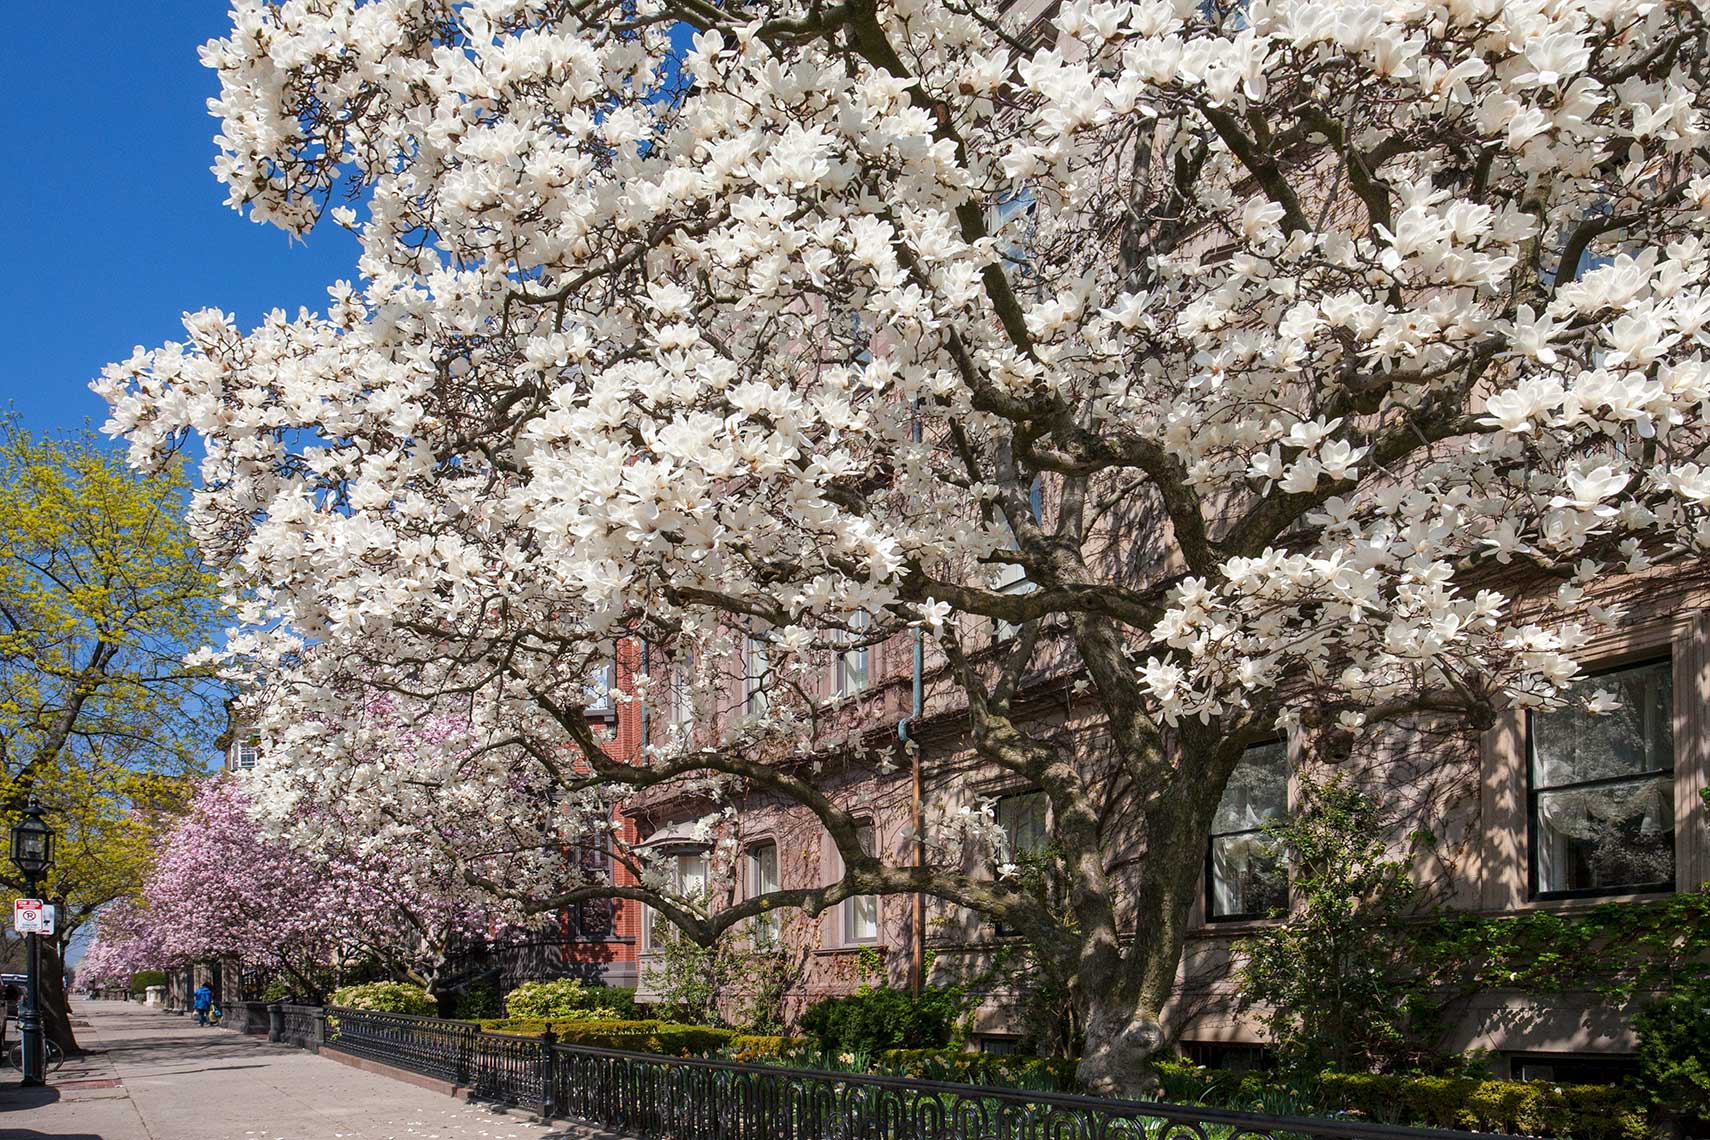 Gorgeous magnolia trees on Commonwealth Avenue in Boston